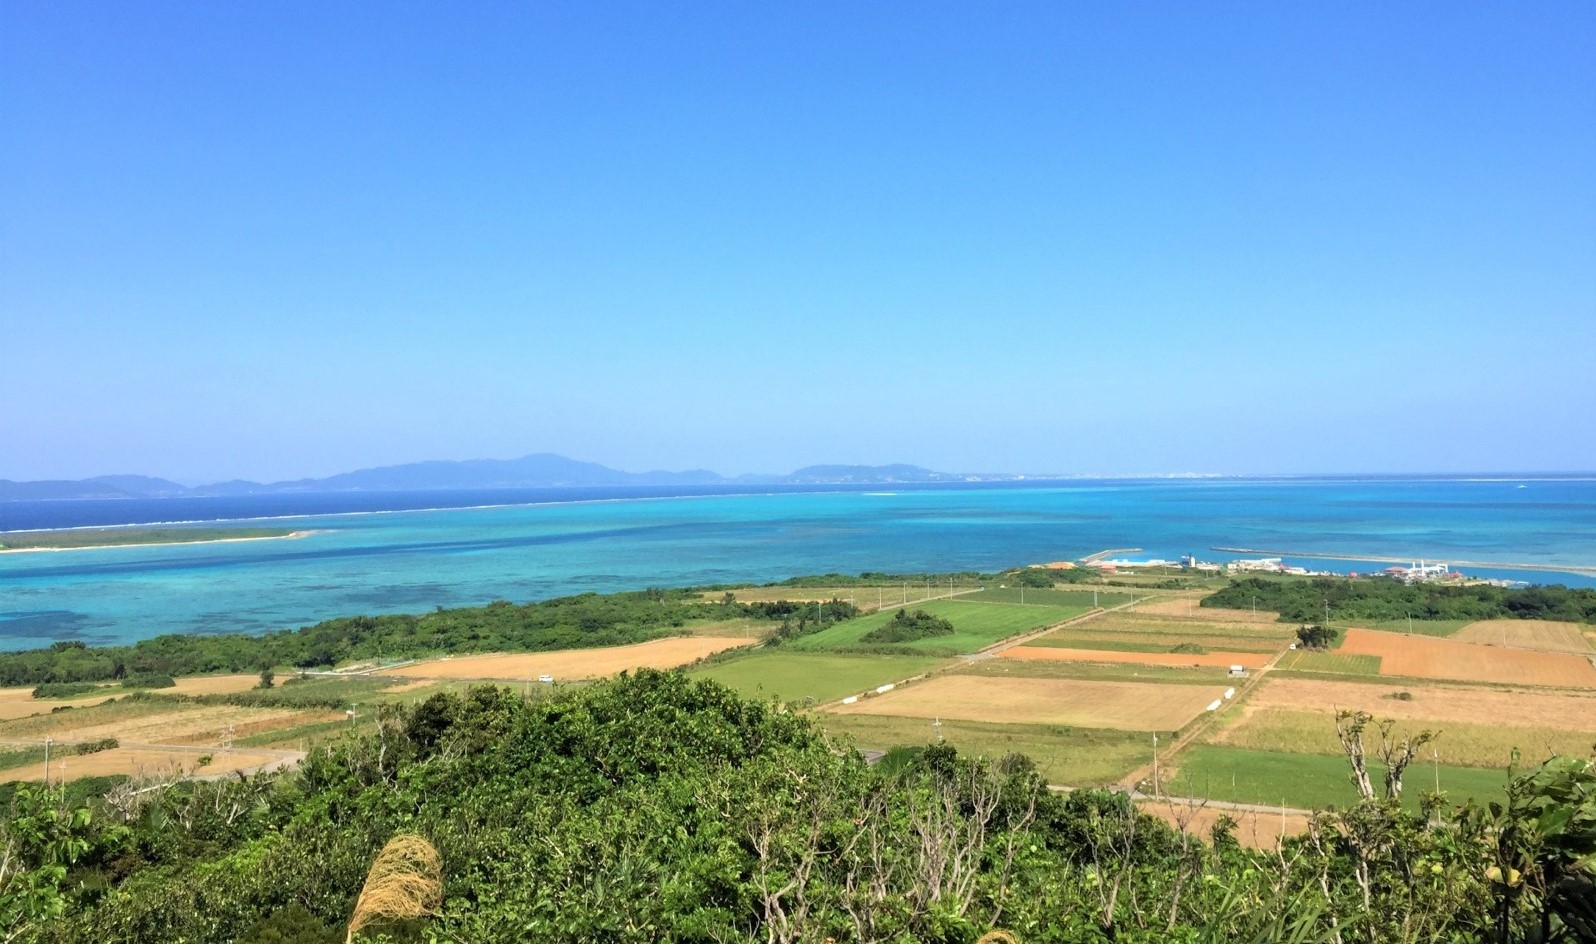 The rural scenery and the beautiful ocean of Kohama Island